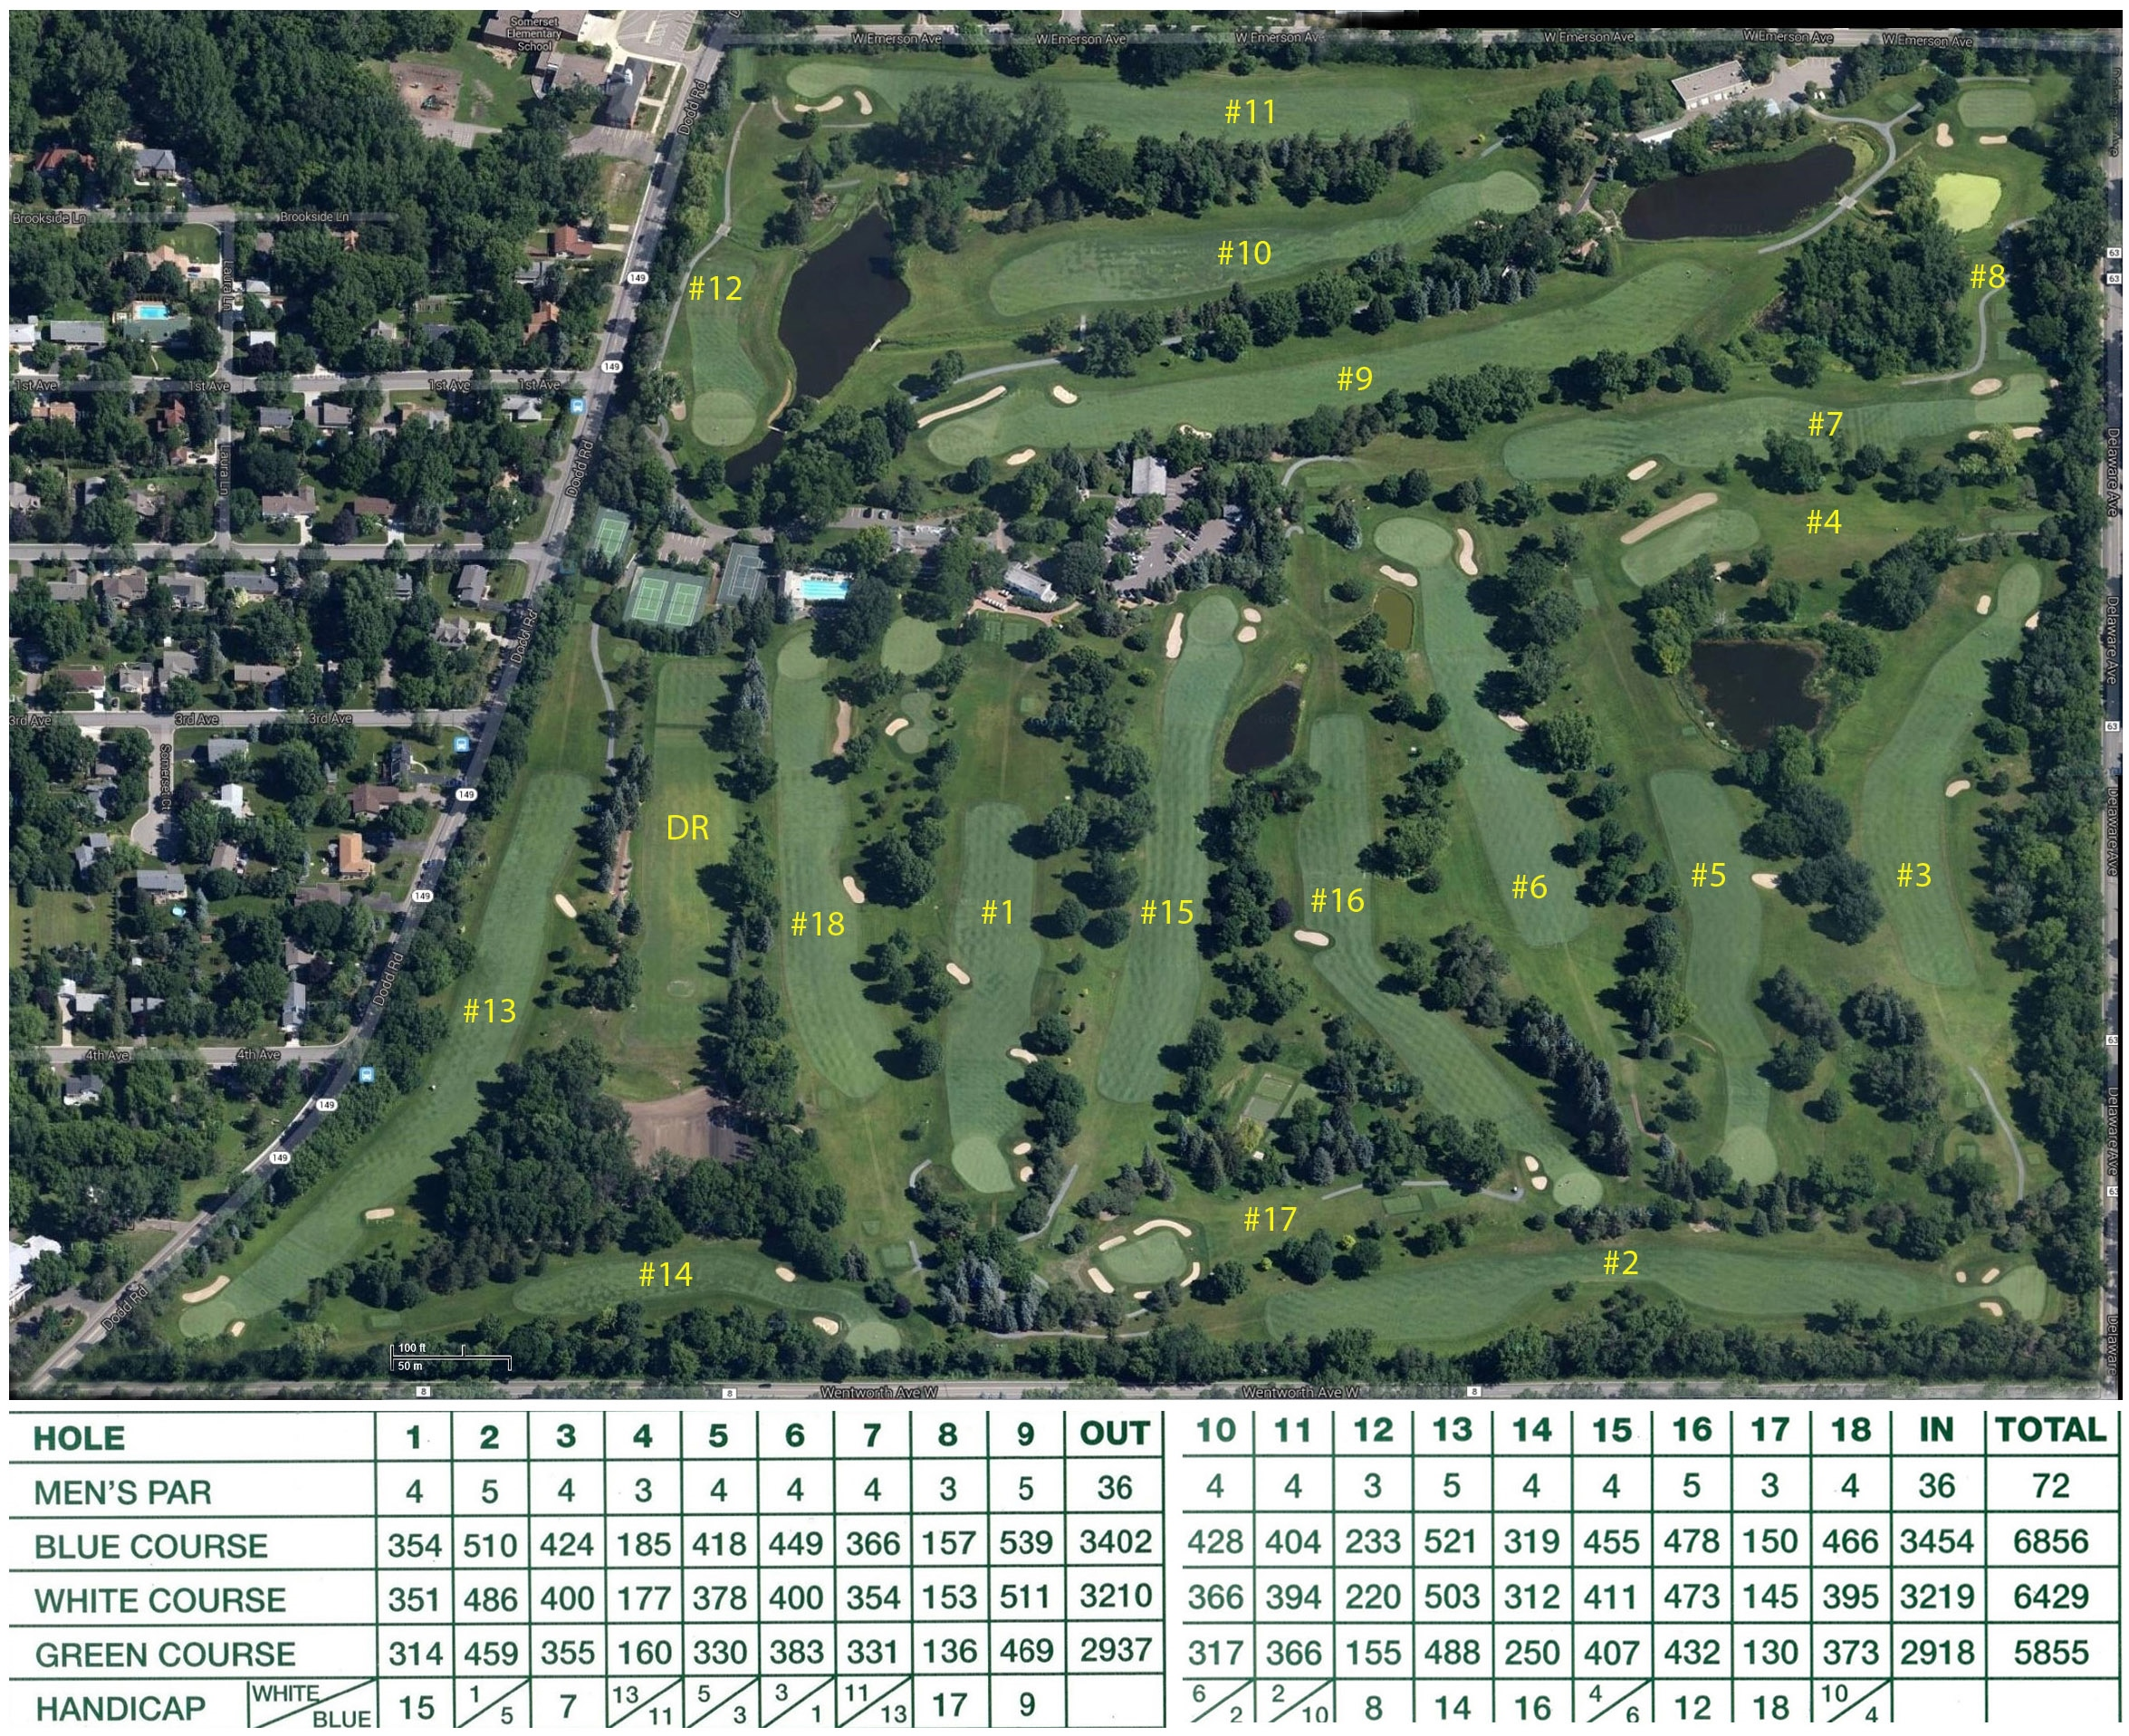 Course Map of Somerset Country Club Somerset Country Club, 1416 Dodd Rd, Mendota Heights, MN